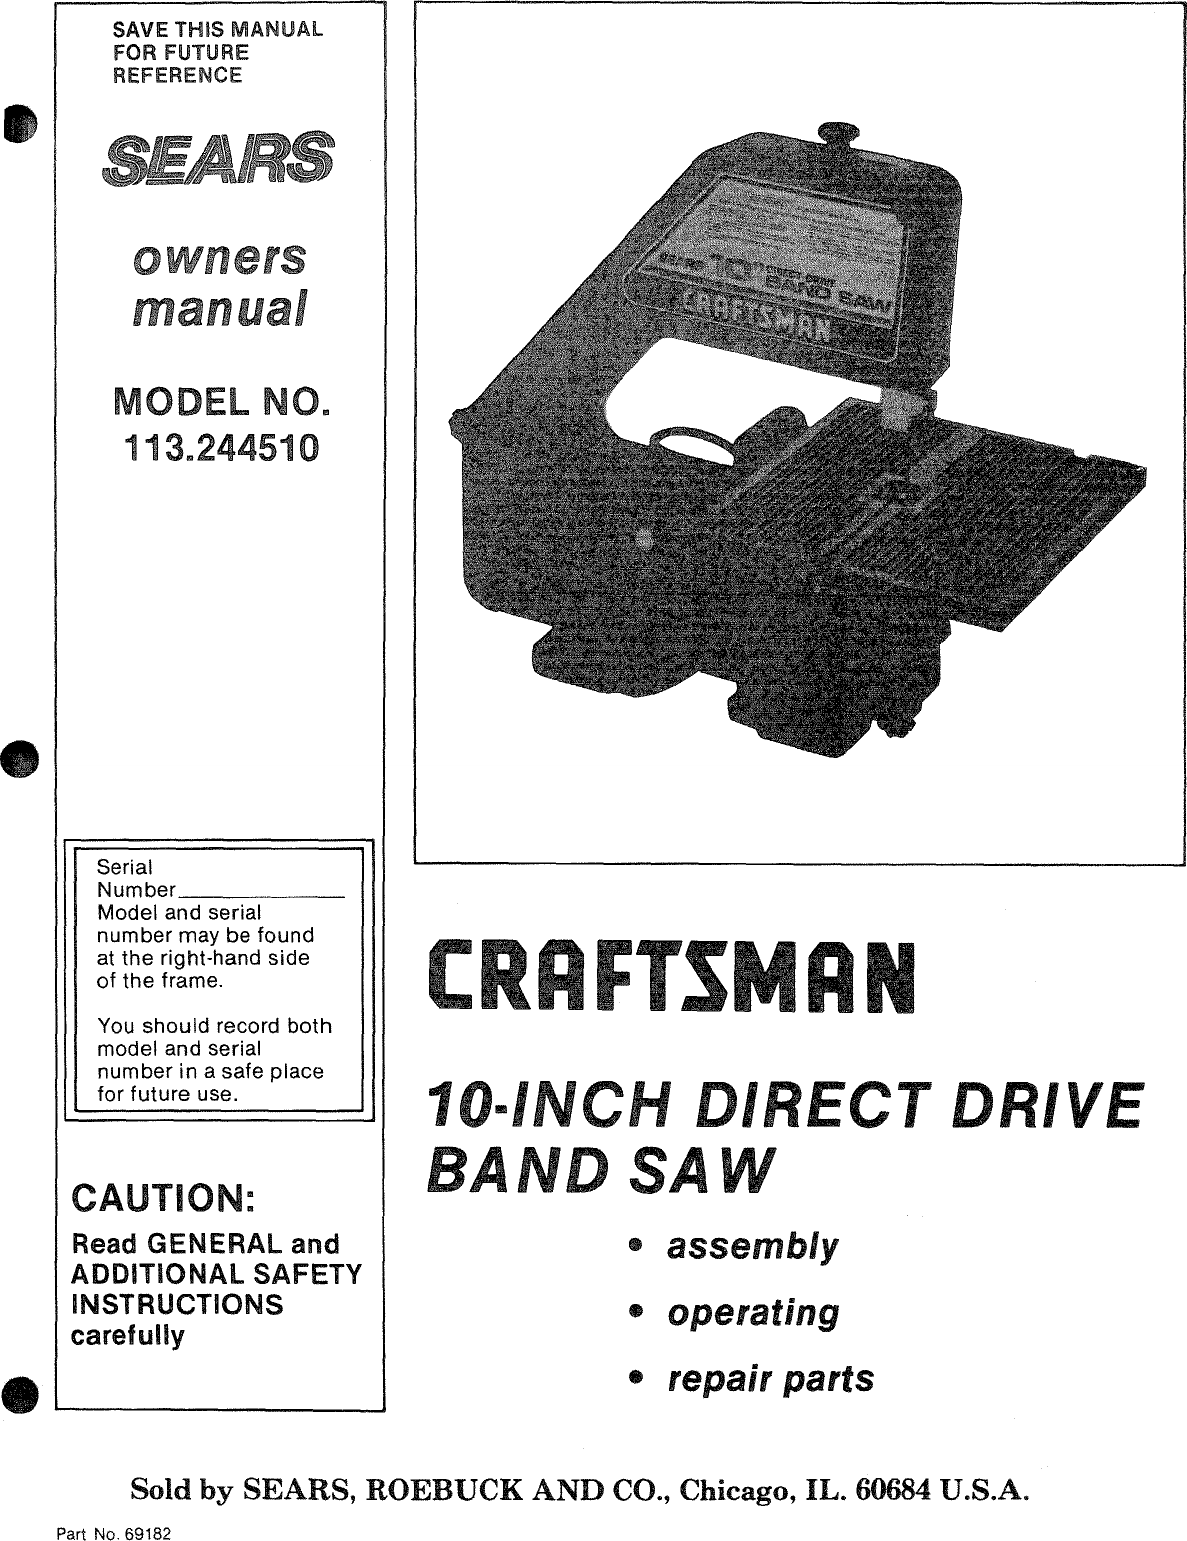 craftsman 113244510 user manual 10 inch direct drive band saw